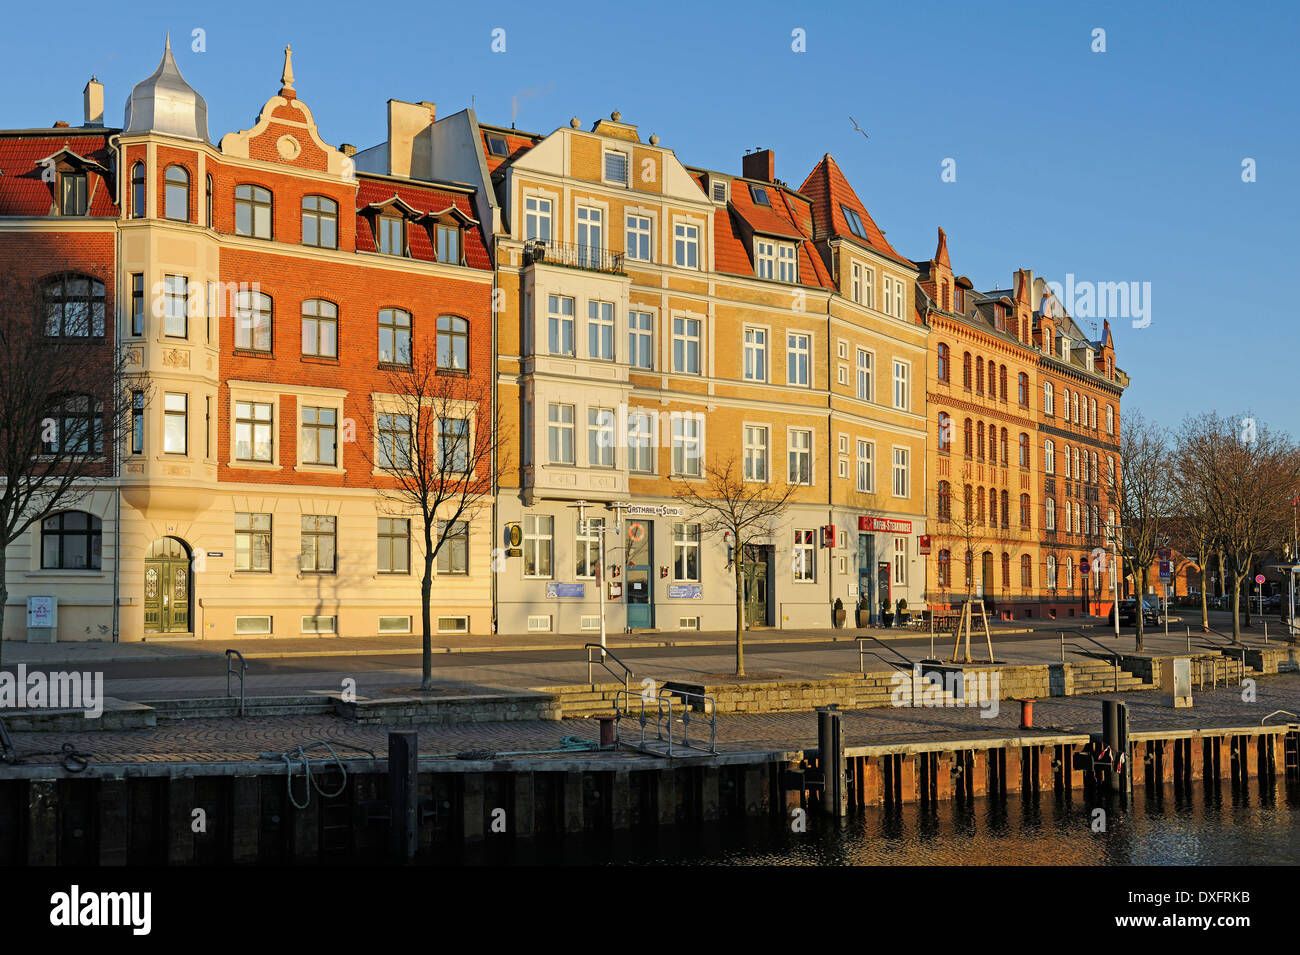 Brick buildings from the 19th Century, at old port, Hanseatic City of Stralsund, Mecklenburg-Western Pomerania, Germany - Stock Image